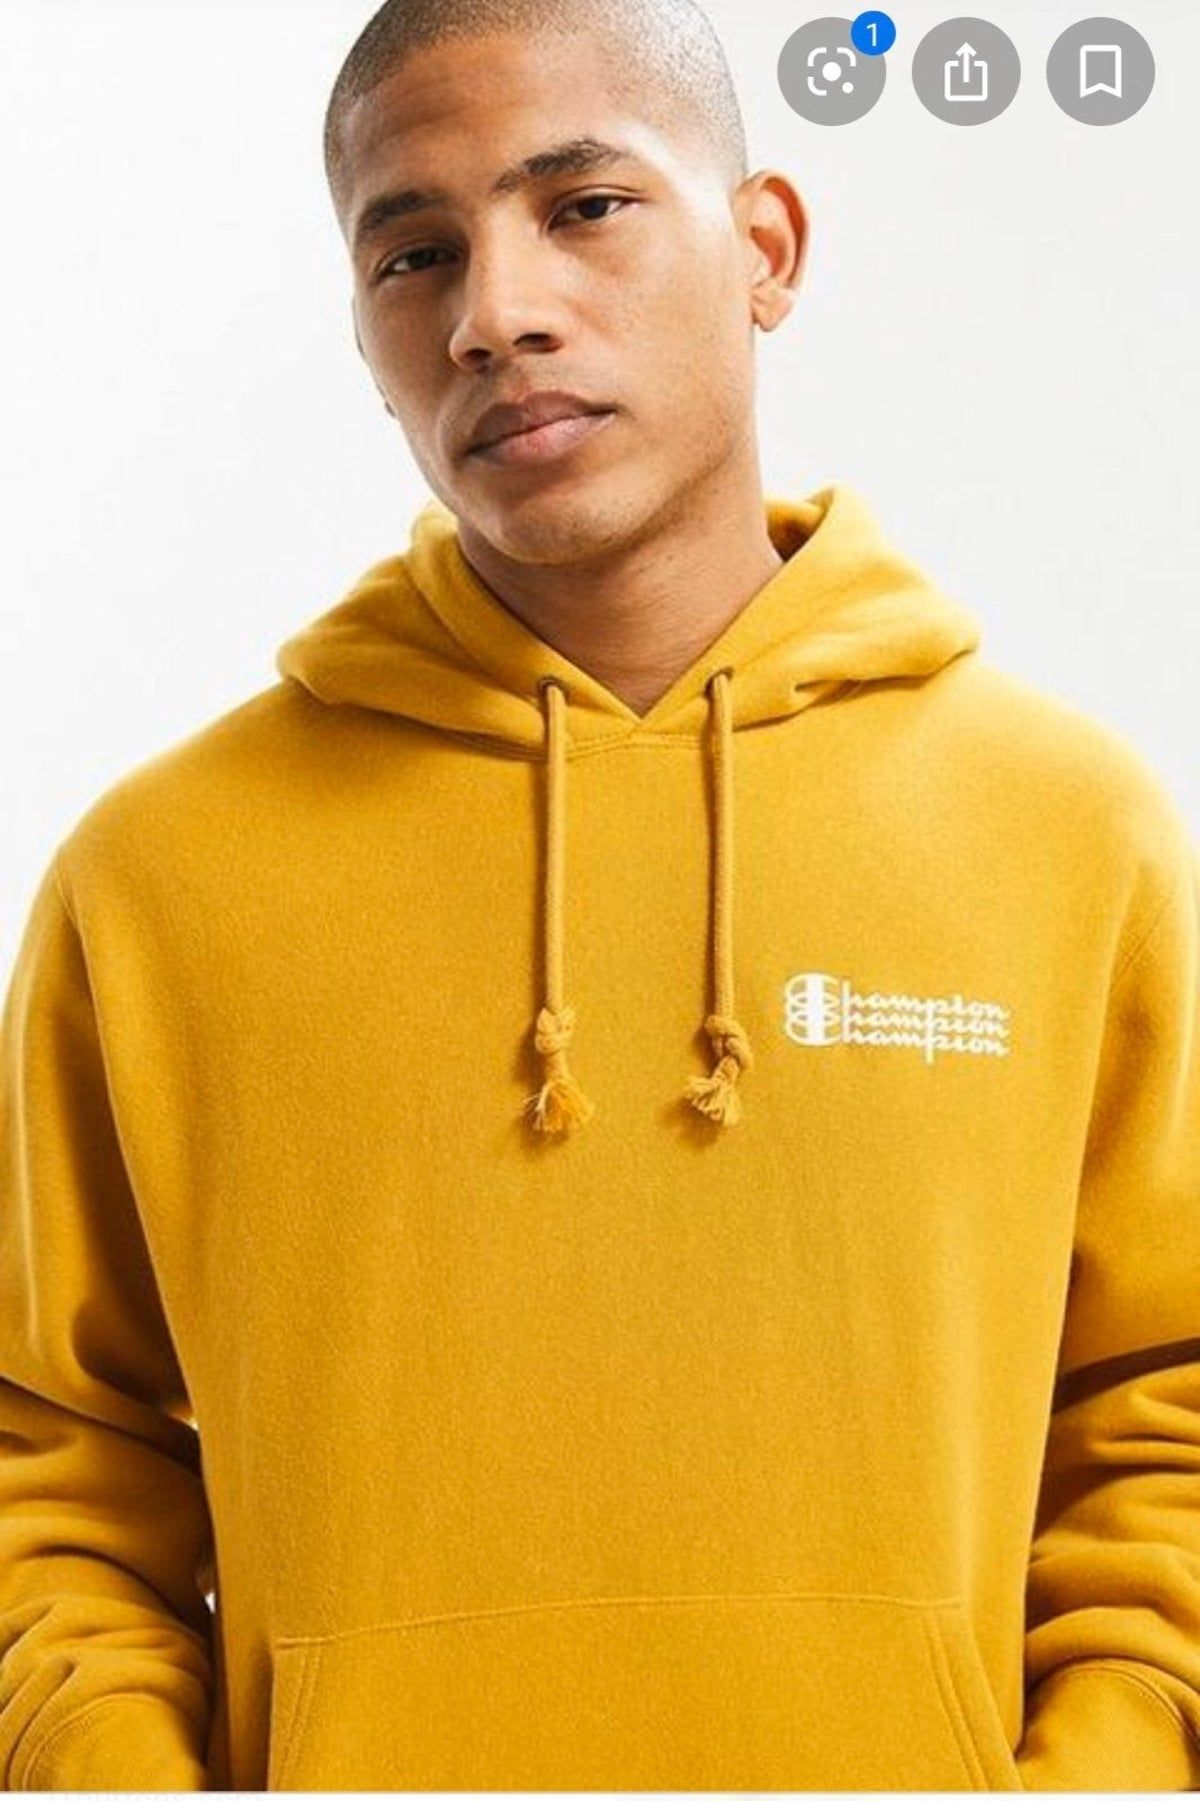 Yellow Urban Outfitters Champion Hoodie Sweatshirts Hoodie Hoodies Sweatshirts [ 1801 x 1200 Pixel ]